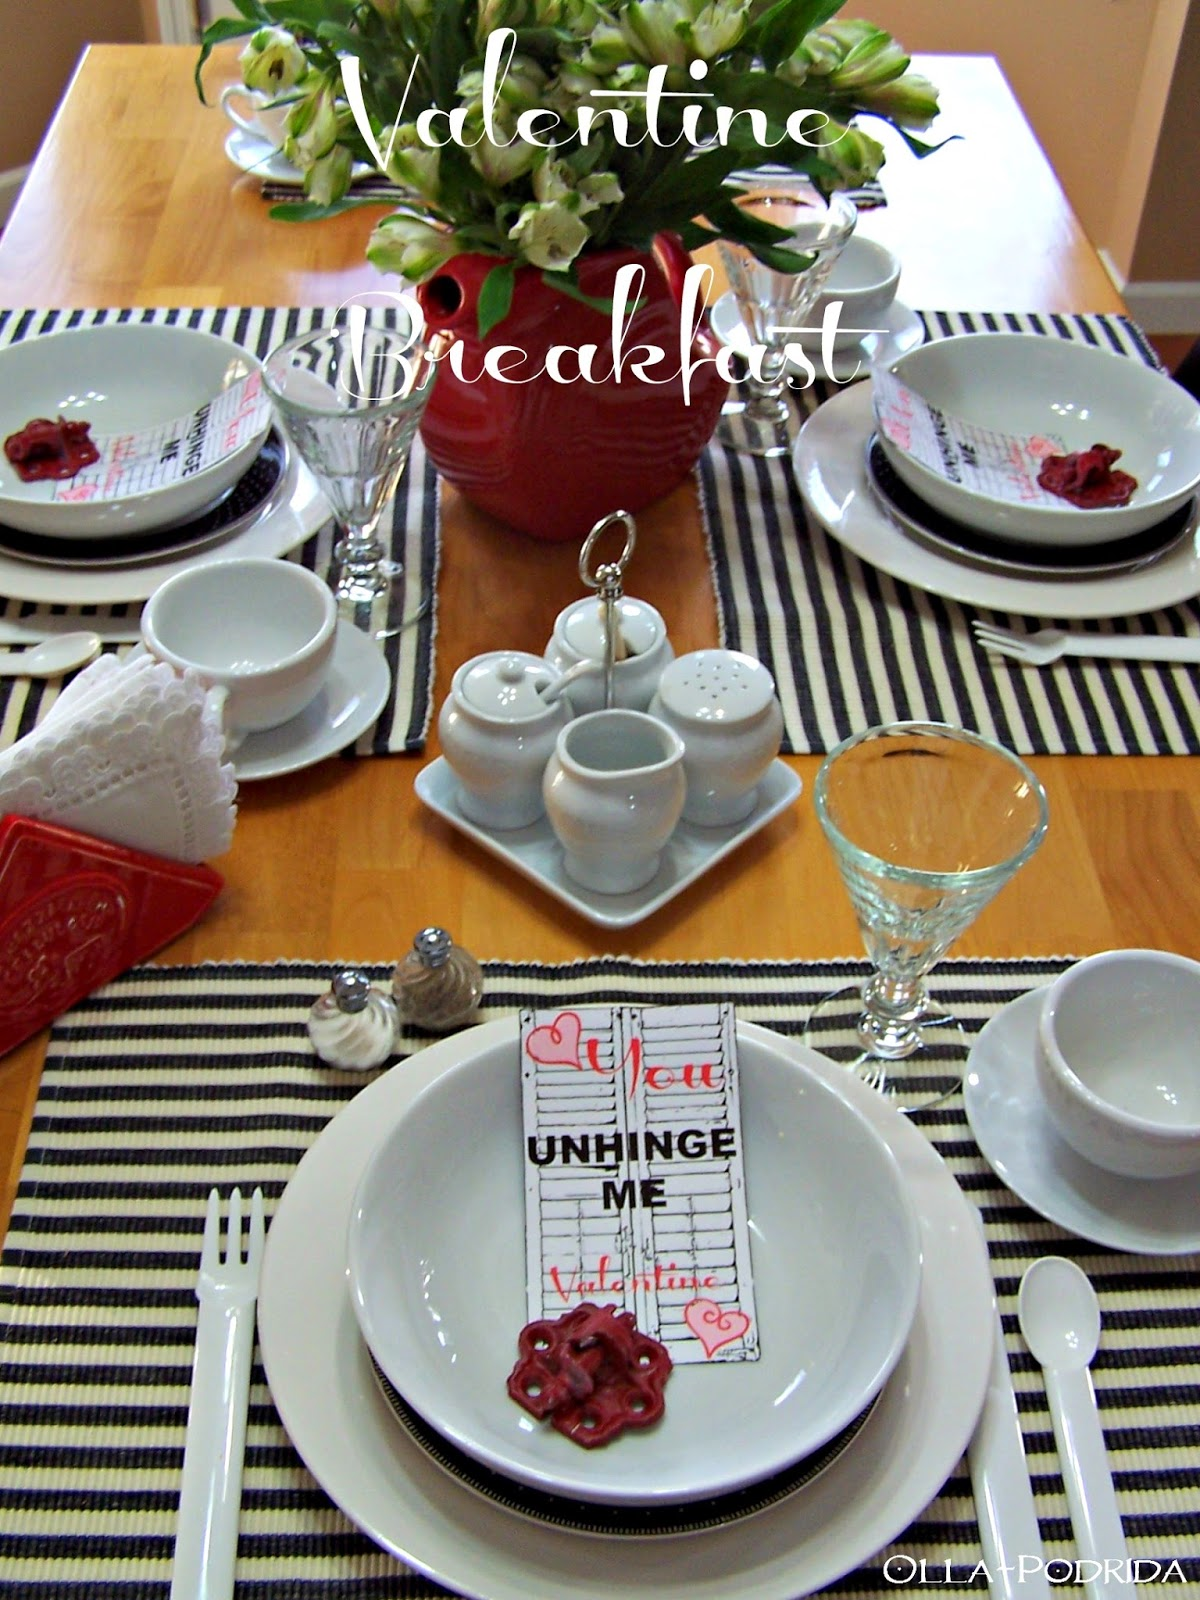 Valentine Breakfast Tablesetting & Olla-Podrida: Valentine Breakfast Tablesetting